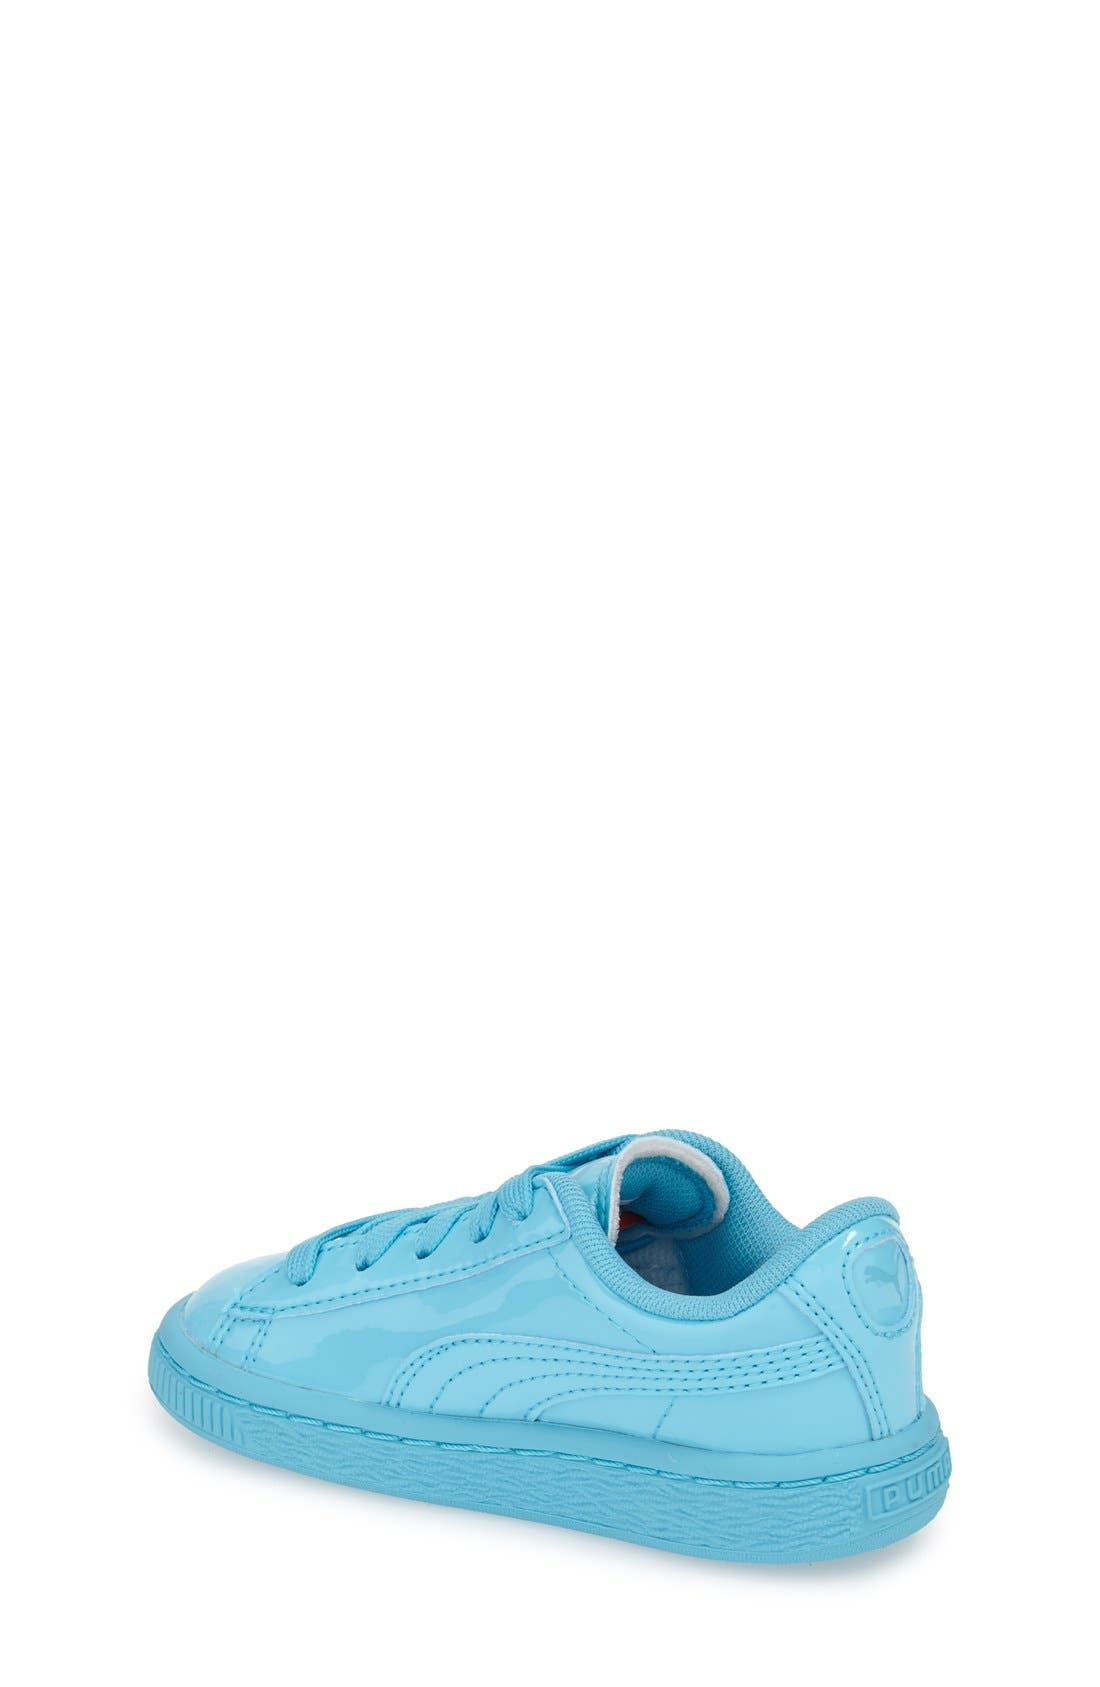 'Basket Classic' Shoe,                             Alternate thumbnail 2, color,                             Blue Atoll-Blue Atoll